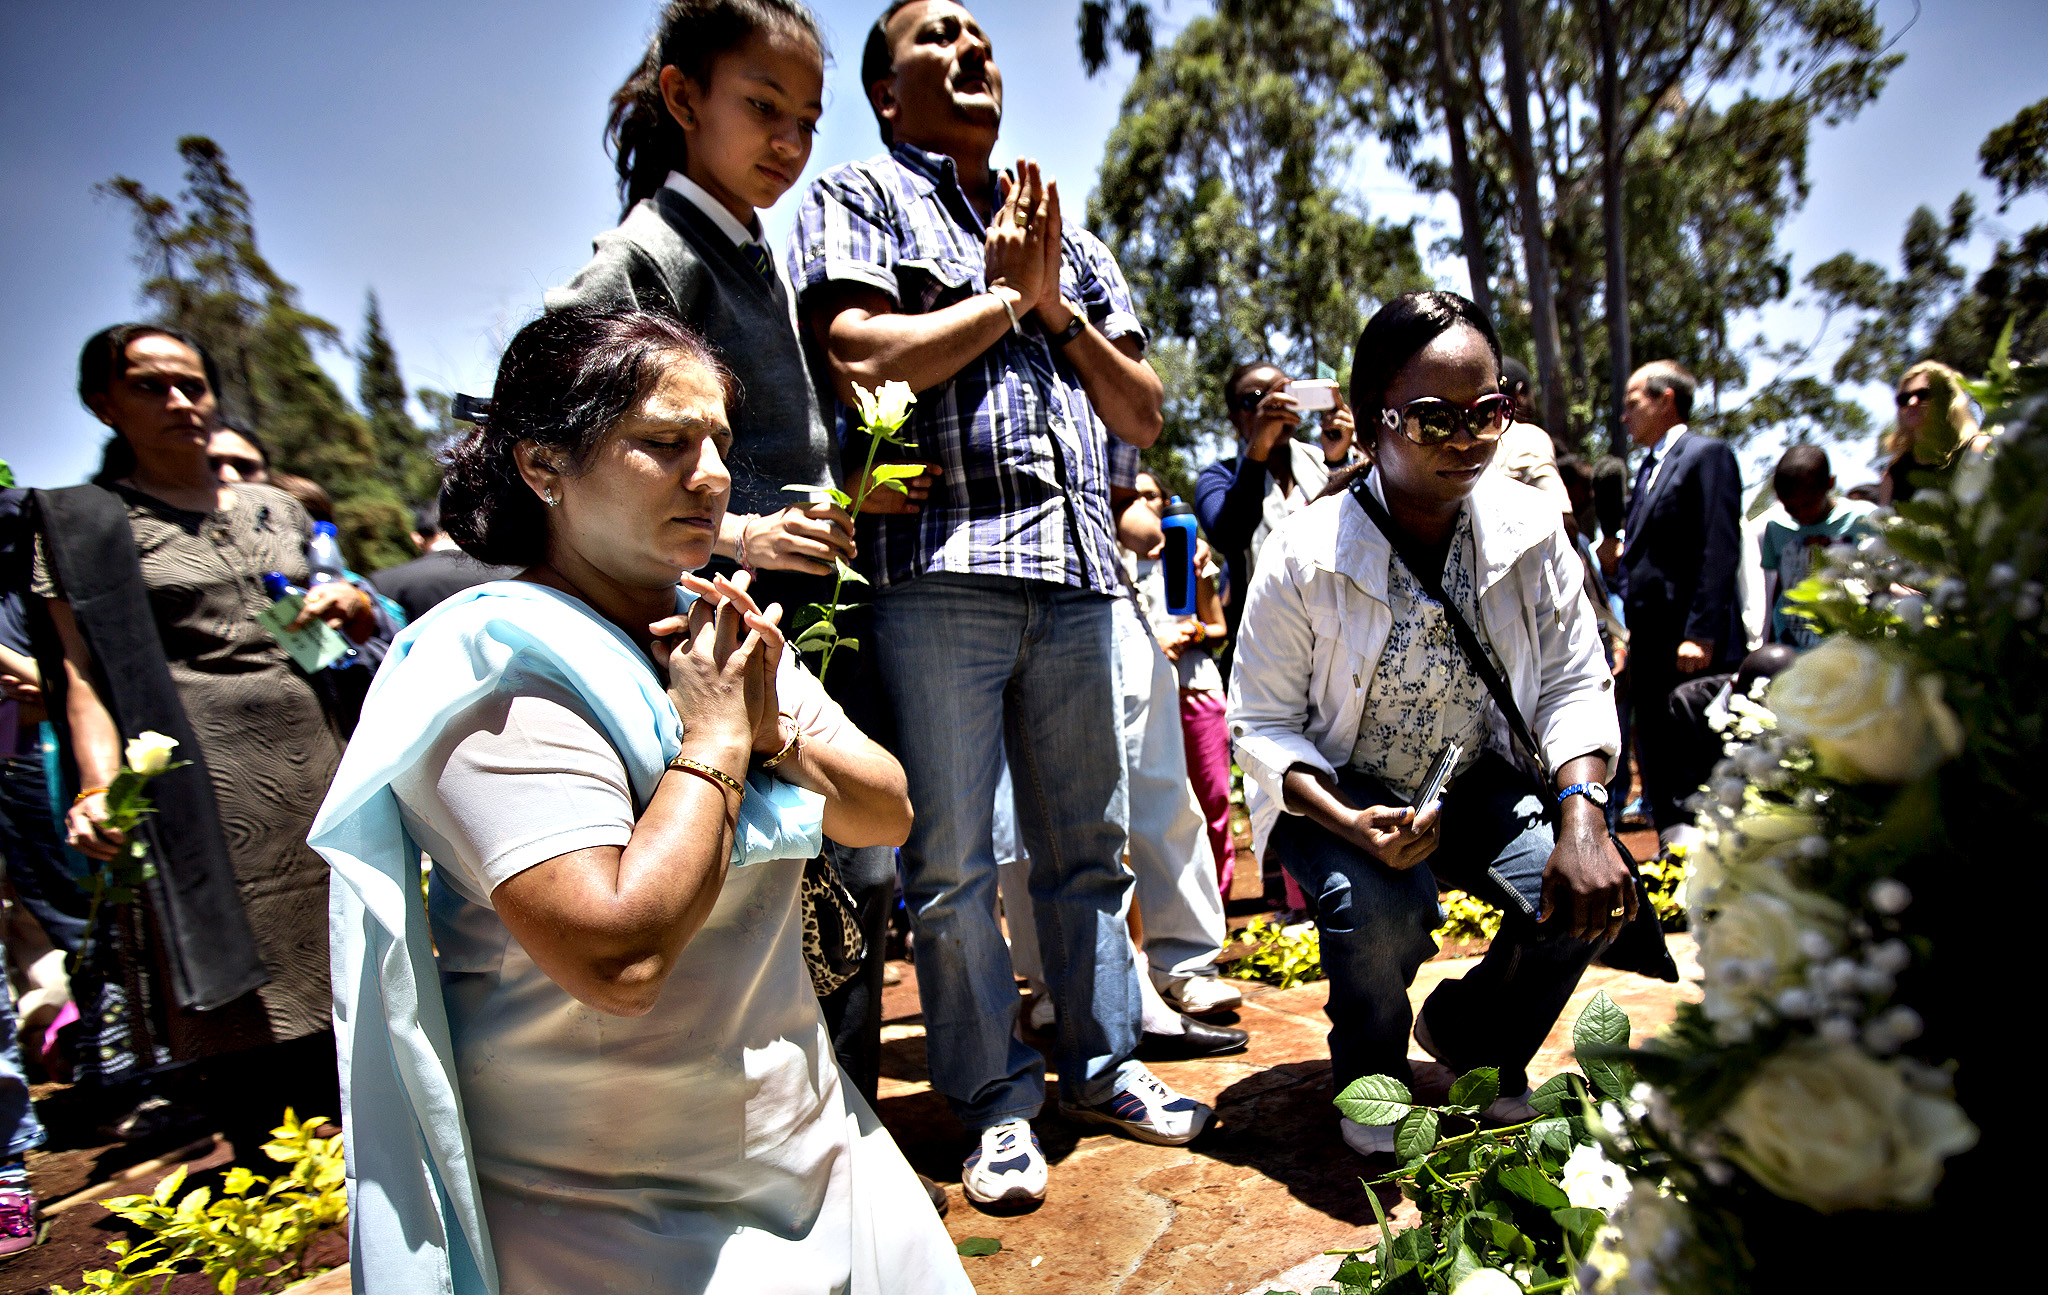 Relatives of those who died lay white roses and pray at a stone memorial, during a memorial service marking the one-month anniversary of the Sept. 21 Westgate Mall terrorist attack, in Karura Forest in Nairobi, Kenya Monday, Oct. 21, 2013. Families and friends of those killed in the attack planted trees in memory of lost loved ones in a ceremony that stressed that the attack occurred against people of all races and religions.